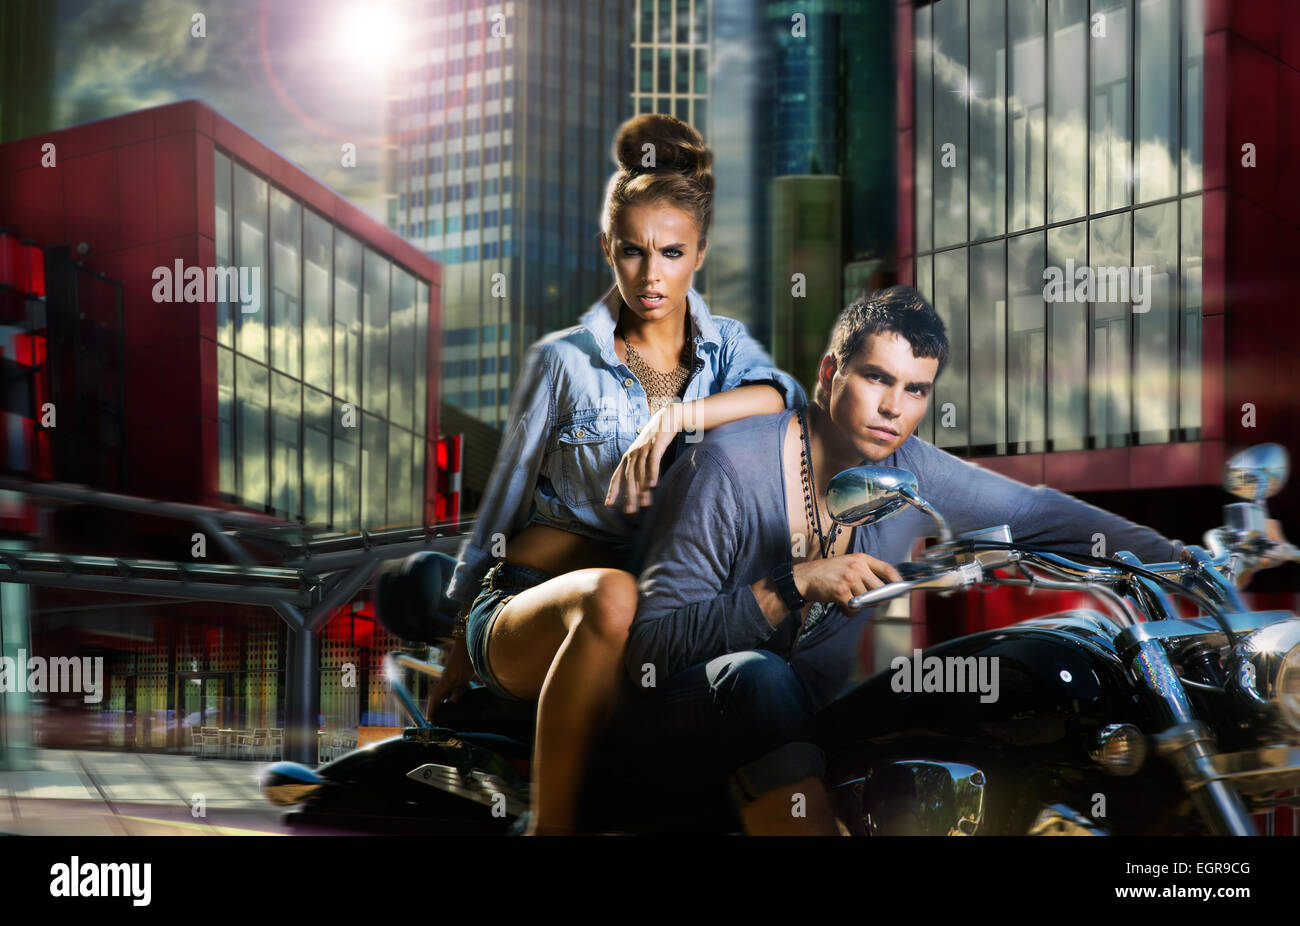 Adventure. A Couple Riding A Motorcycle - Stock Image